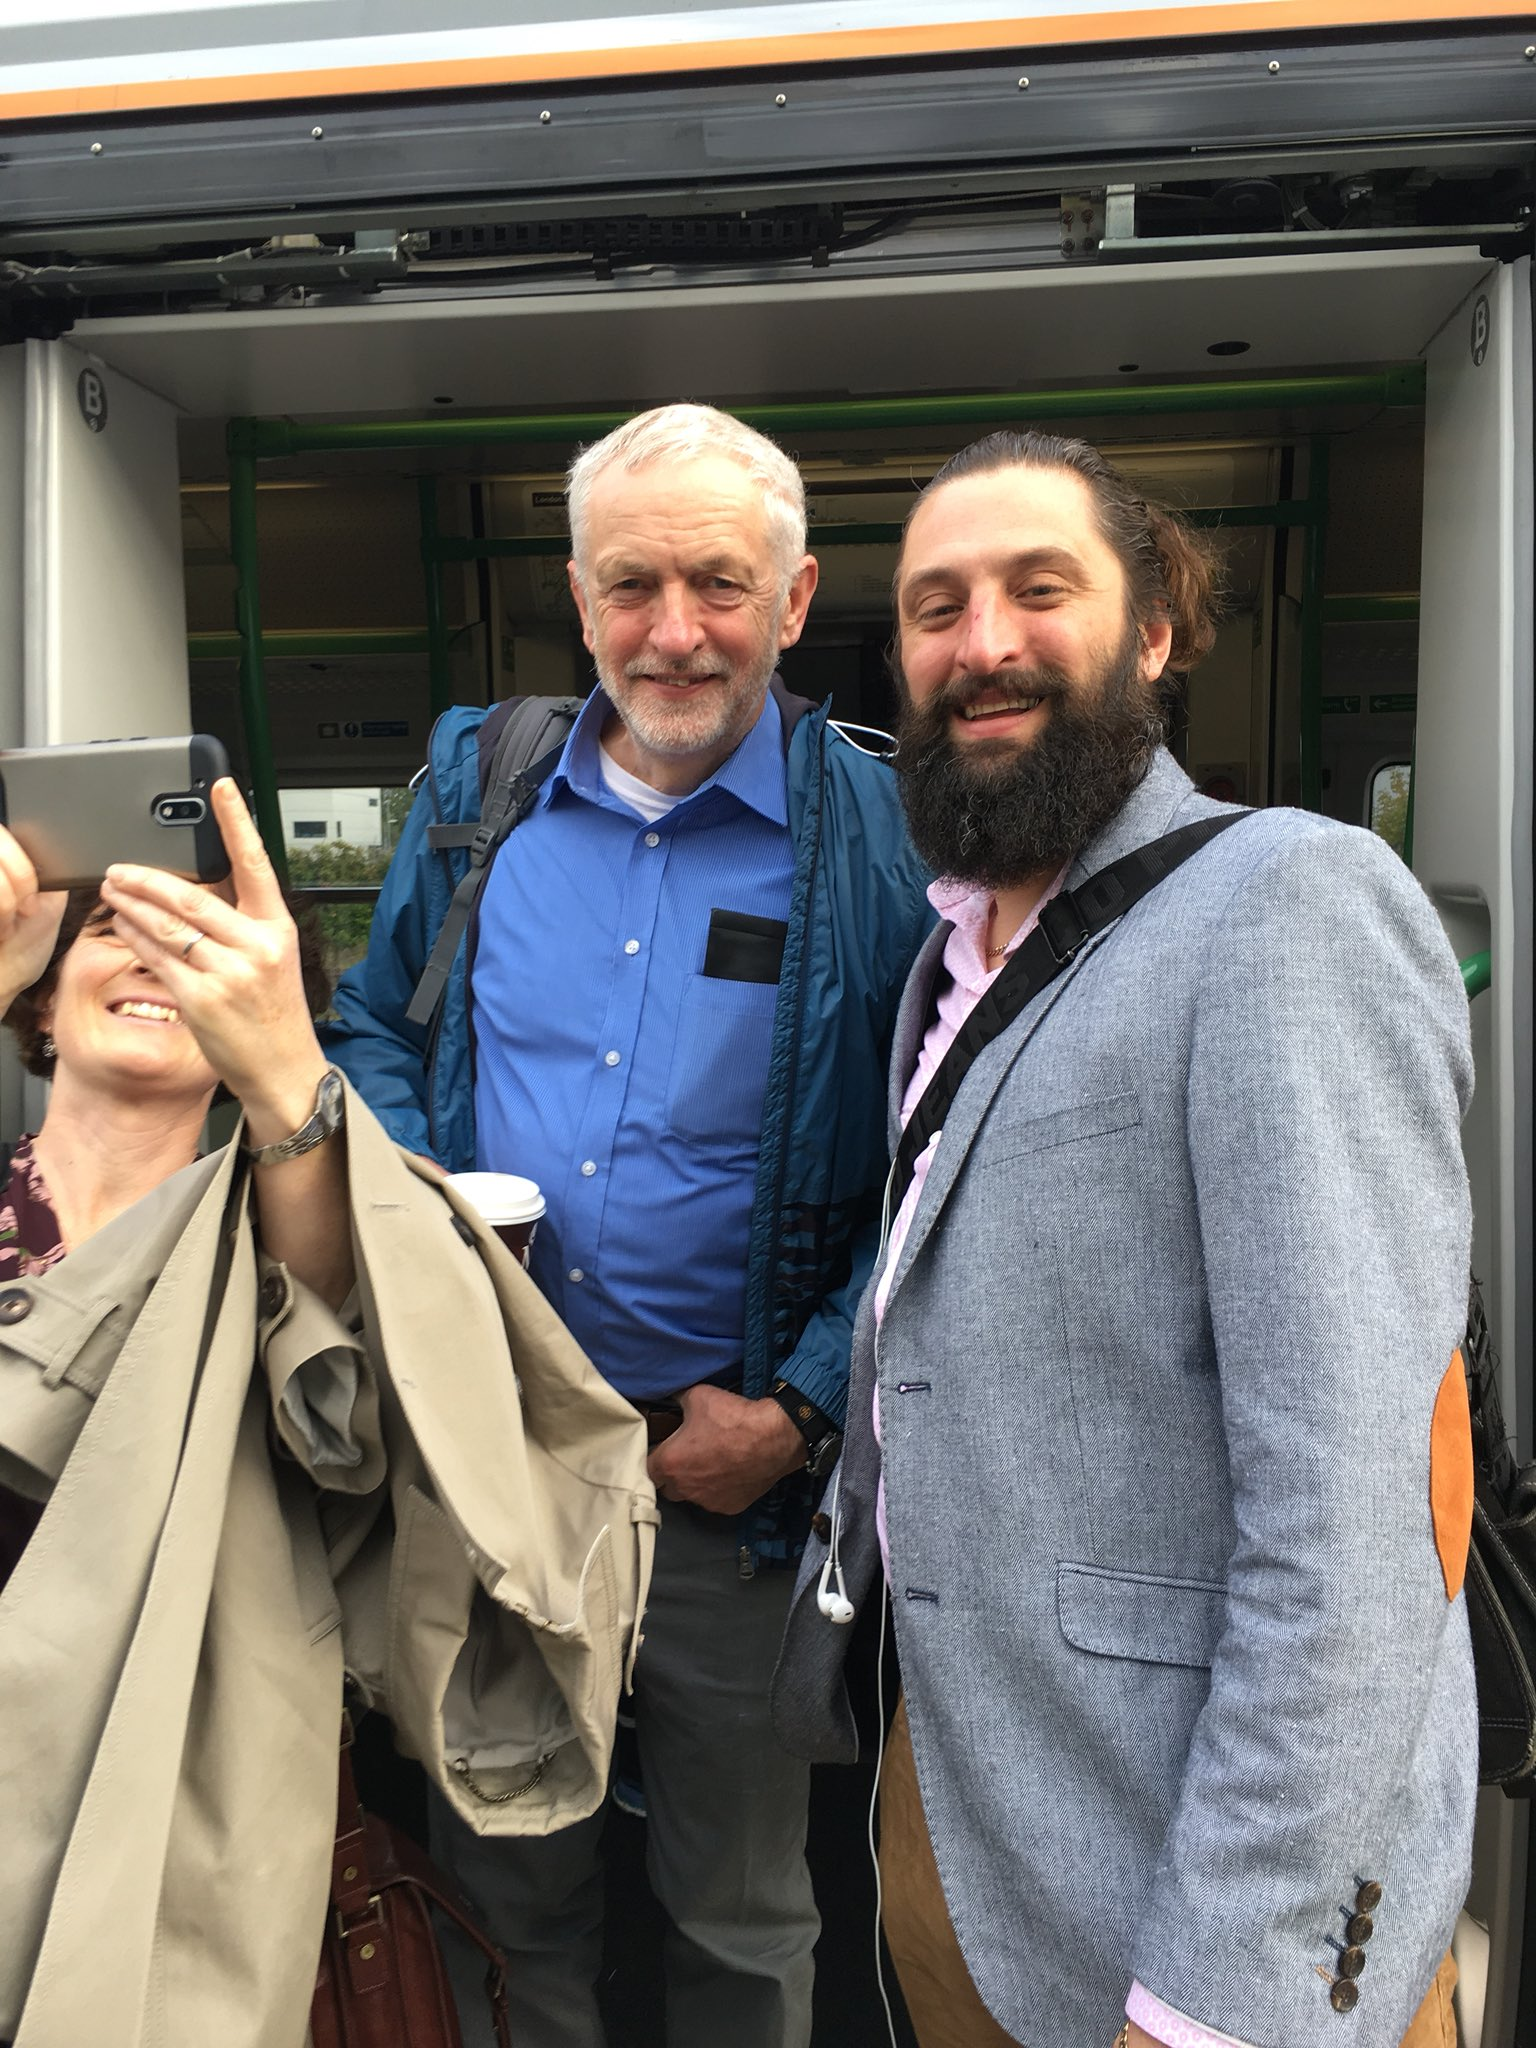 Anton and Jeremy Corbyn at Cambridge Station